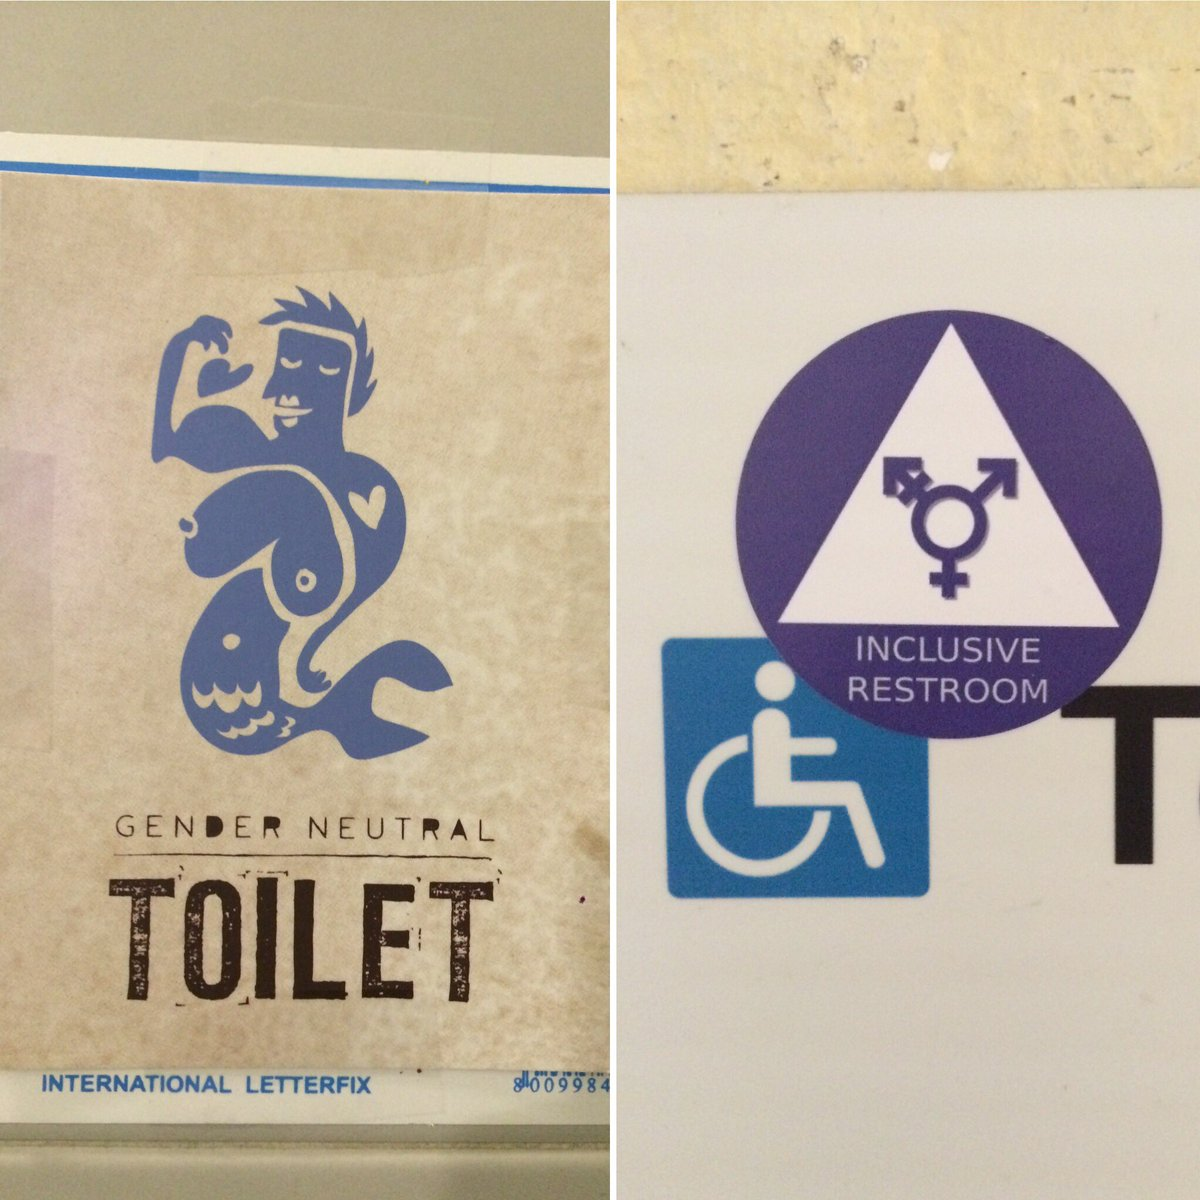 NonBinary NI On Twitter Bathroom Signs Inspiration - International bathroom signs